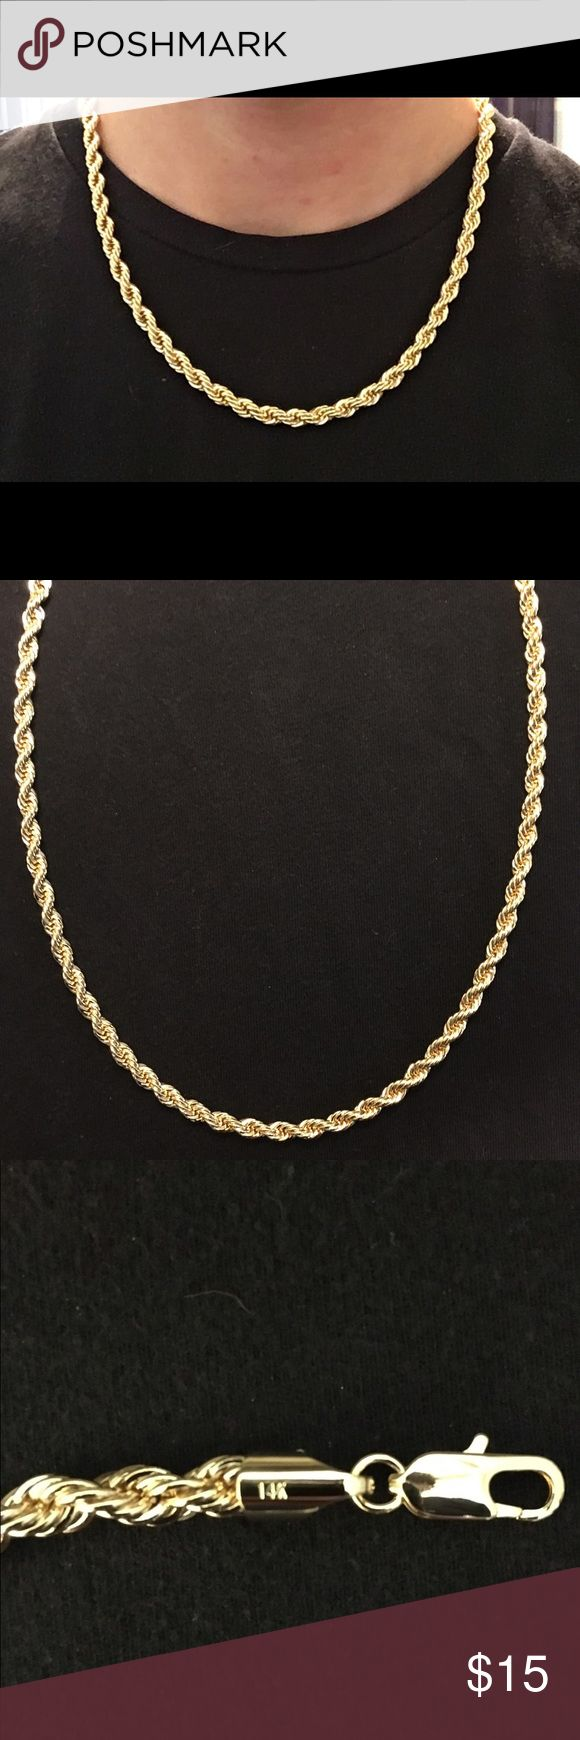 Gold chain 14k gold rope chain 20in 6mm WAS $26 NOW $16 FOR LIMITED TIME!                    Limited Quantity. Get yours Now! High quality 14k gold filled Rope chain Chain is: Stamped 14k • 6mm  • 20in • Gold filled with real 14k gold. Gold filled is a thick layer of real gold. It is more valuable then plating and does not fade away or tarnish like plating. • High quality and durable.  Has good weight to it. • Packaged well and handled with care. • Shipped within the same or 1 day  •…